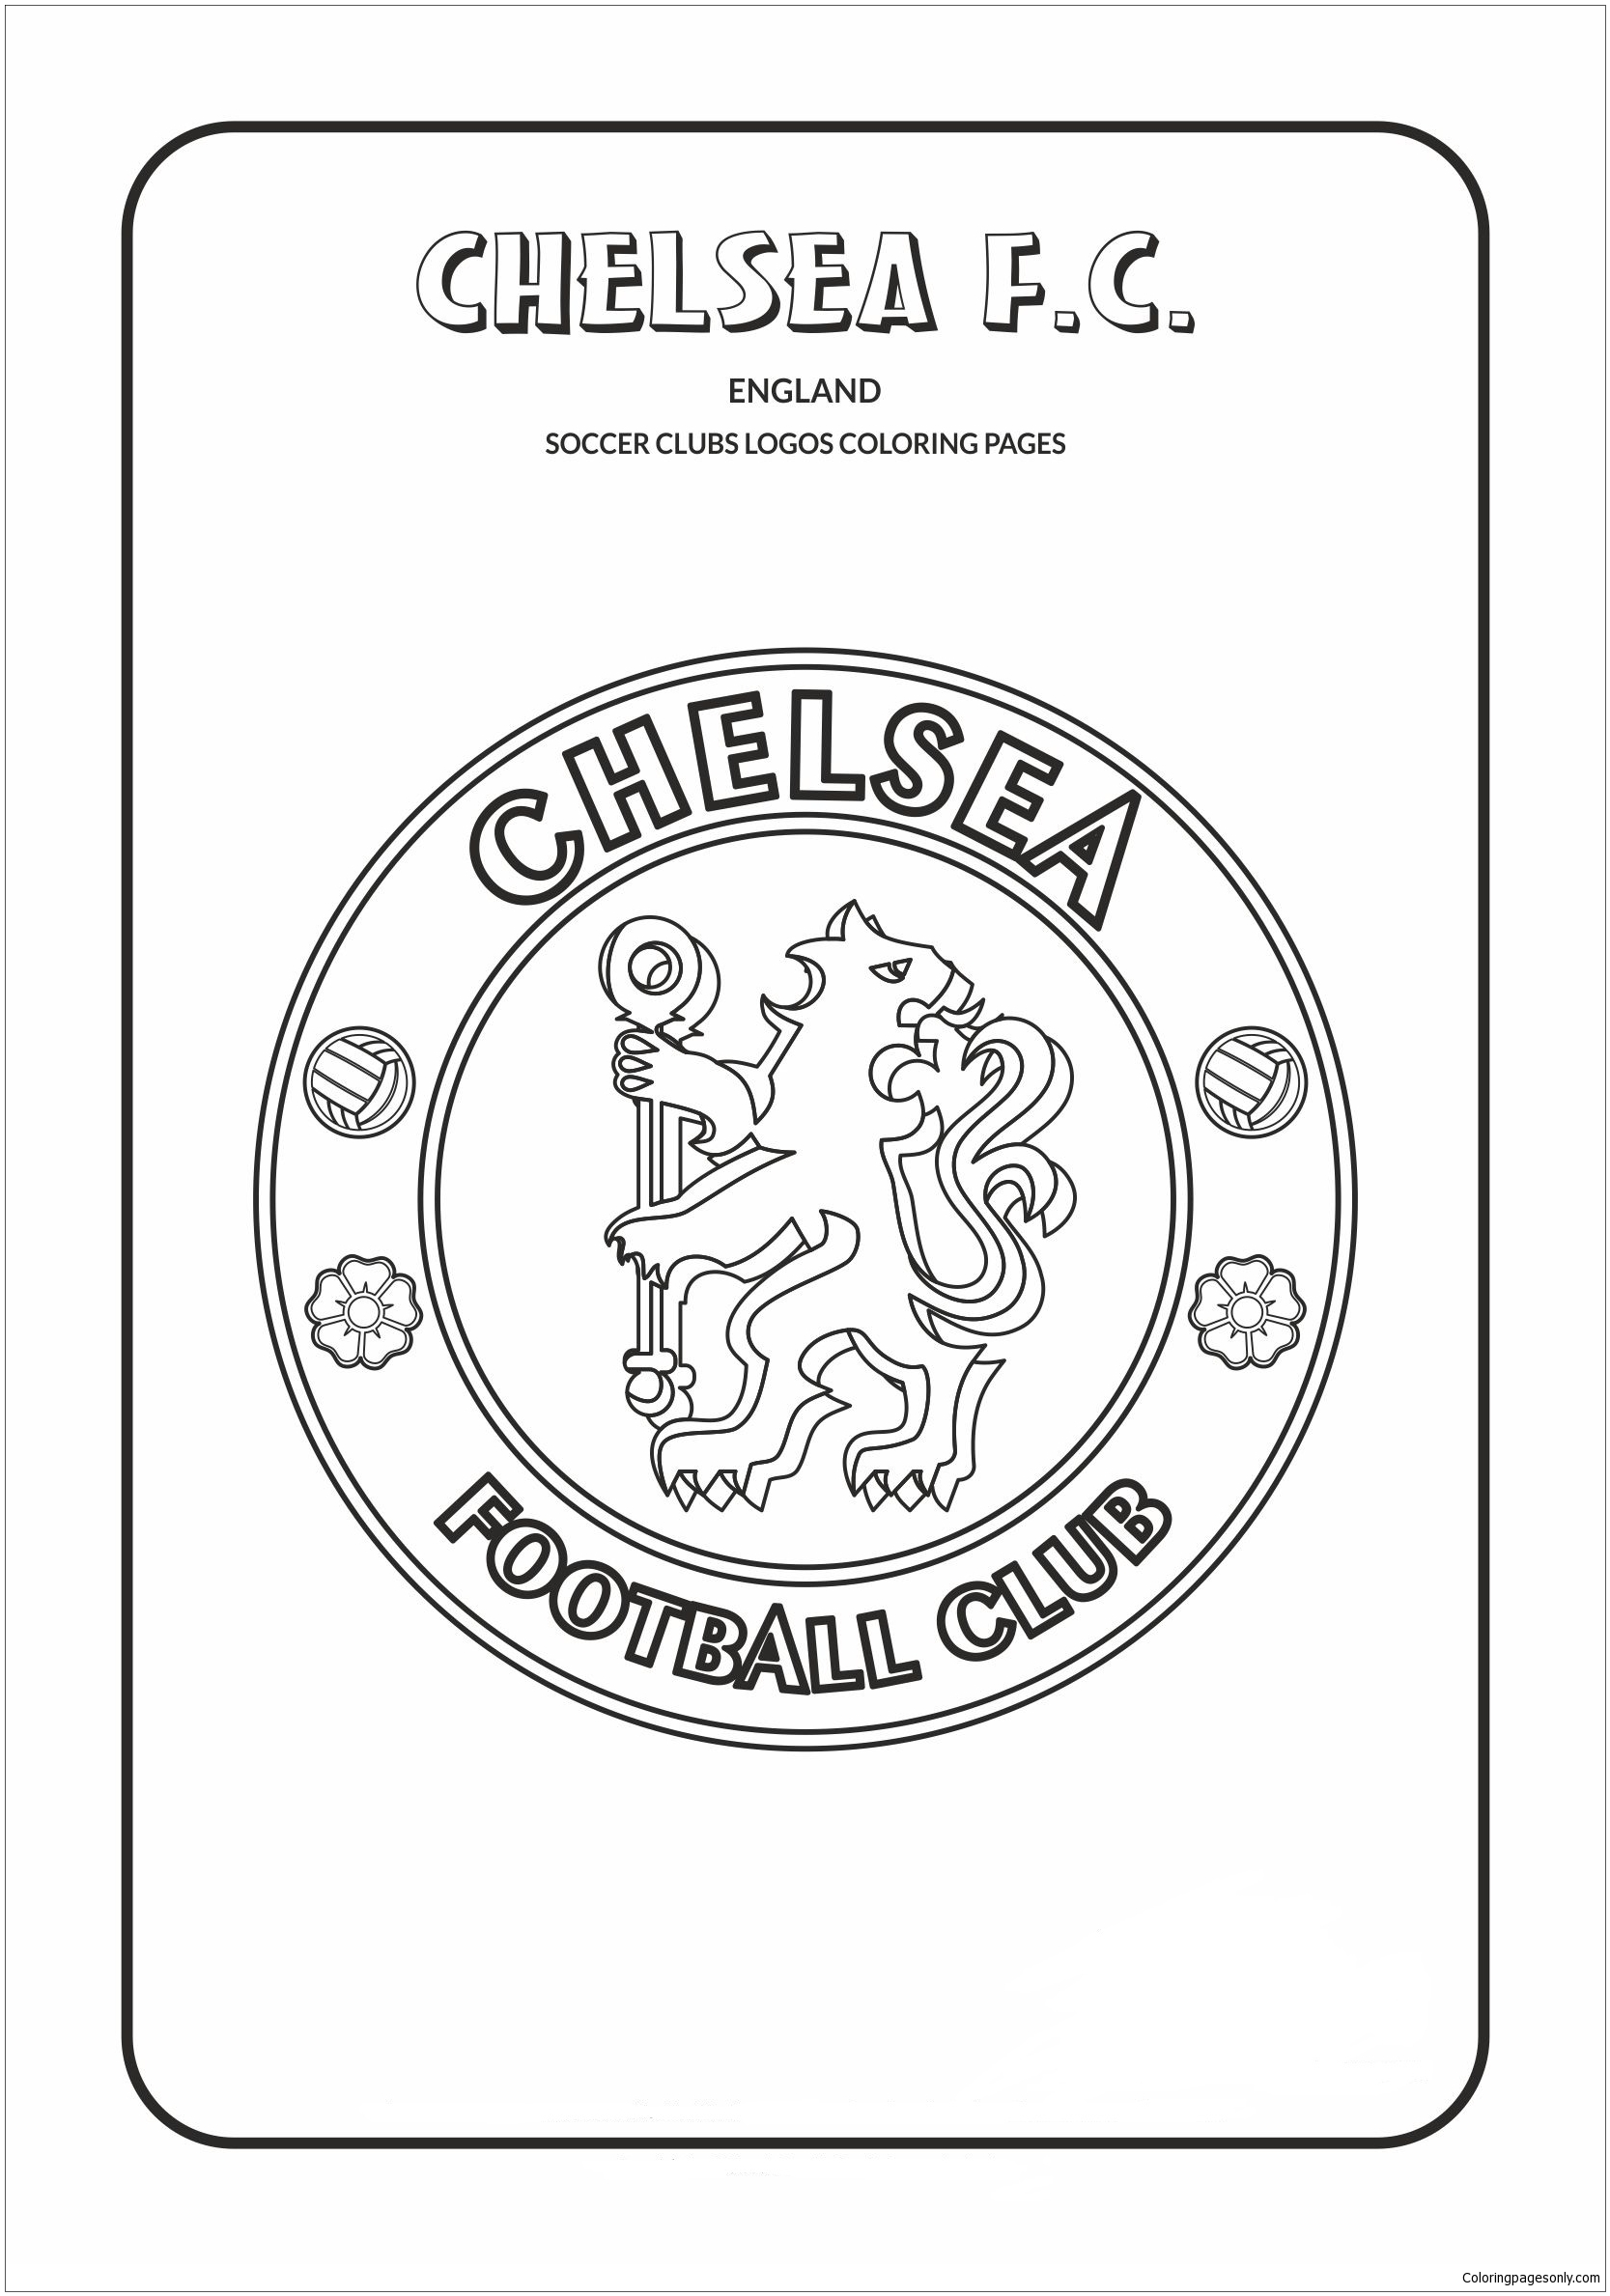 Chelsea F C Coloring Pages Soccer Clubs Logos Coloring Pages Free Printable Coloring Pages Online